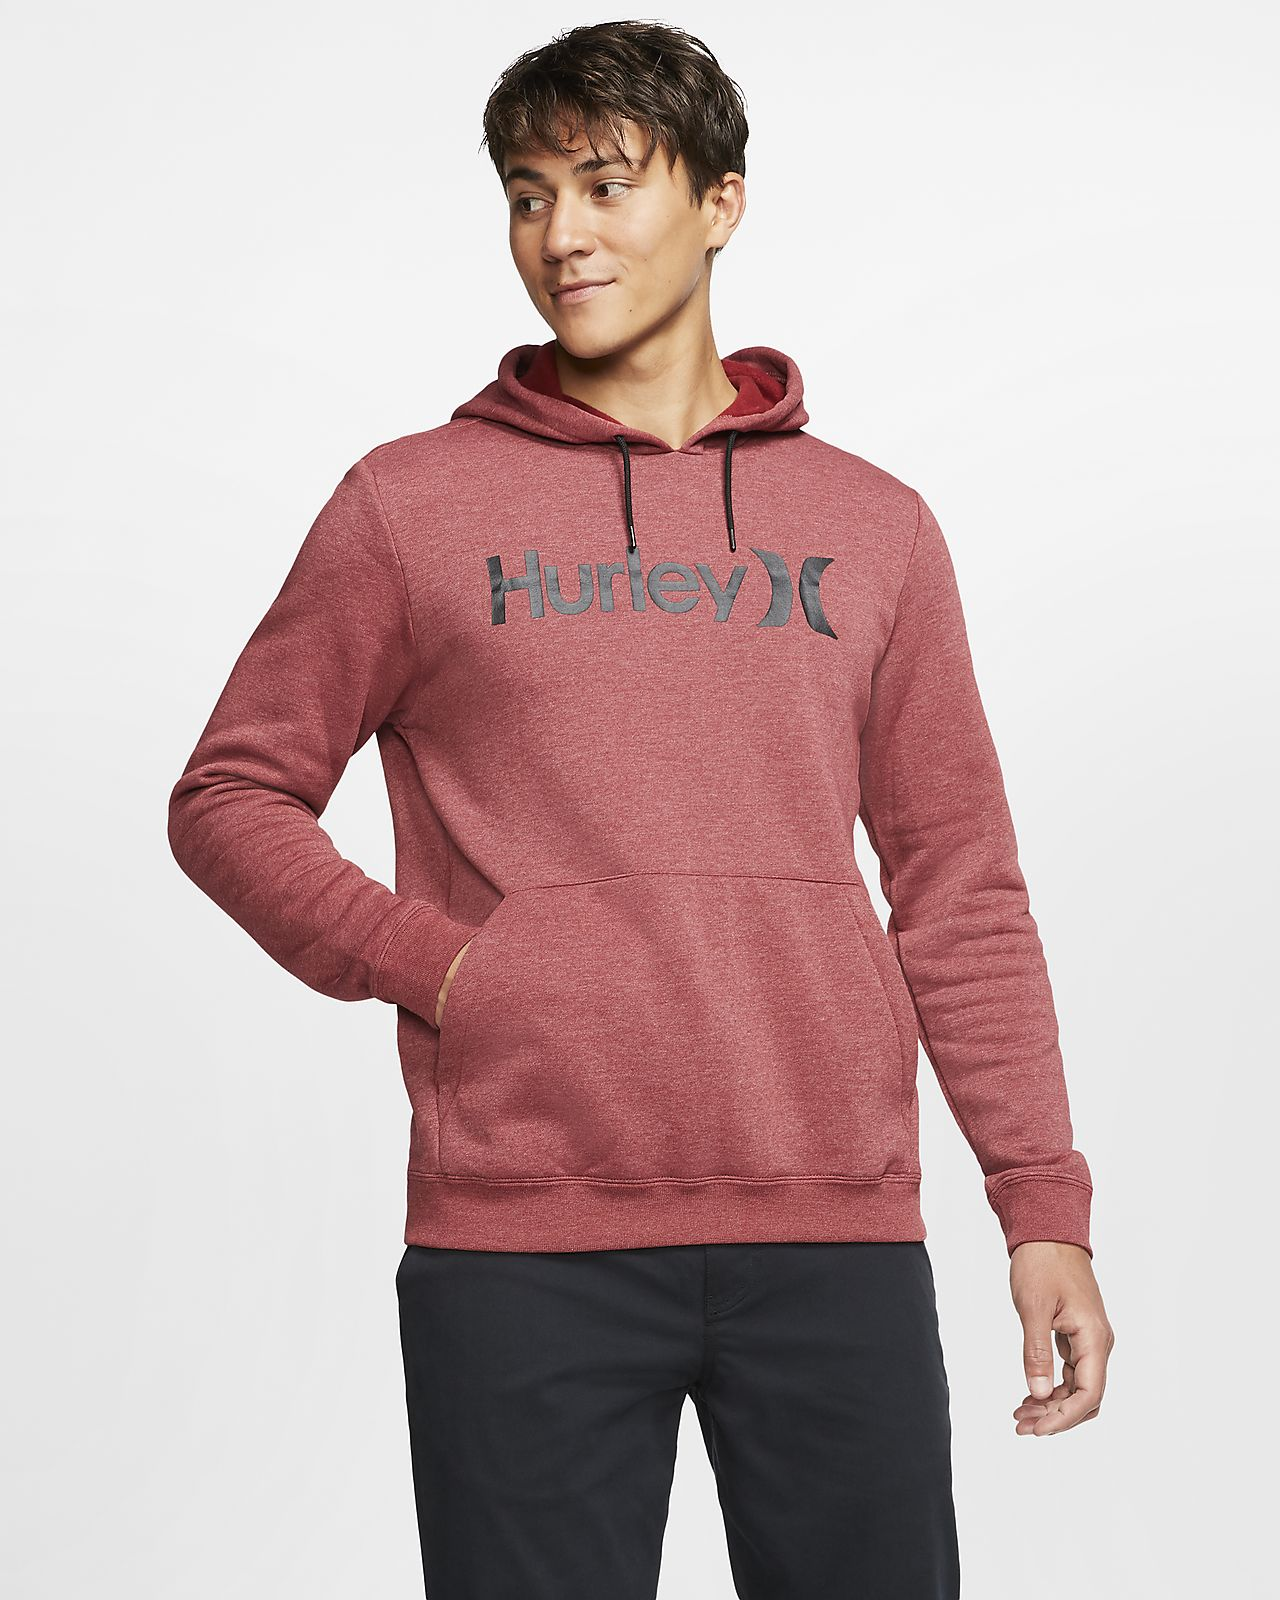 Hurley Surf Check One And Only Men's Fleece Pullover Hoodie